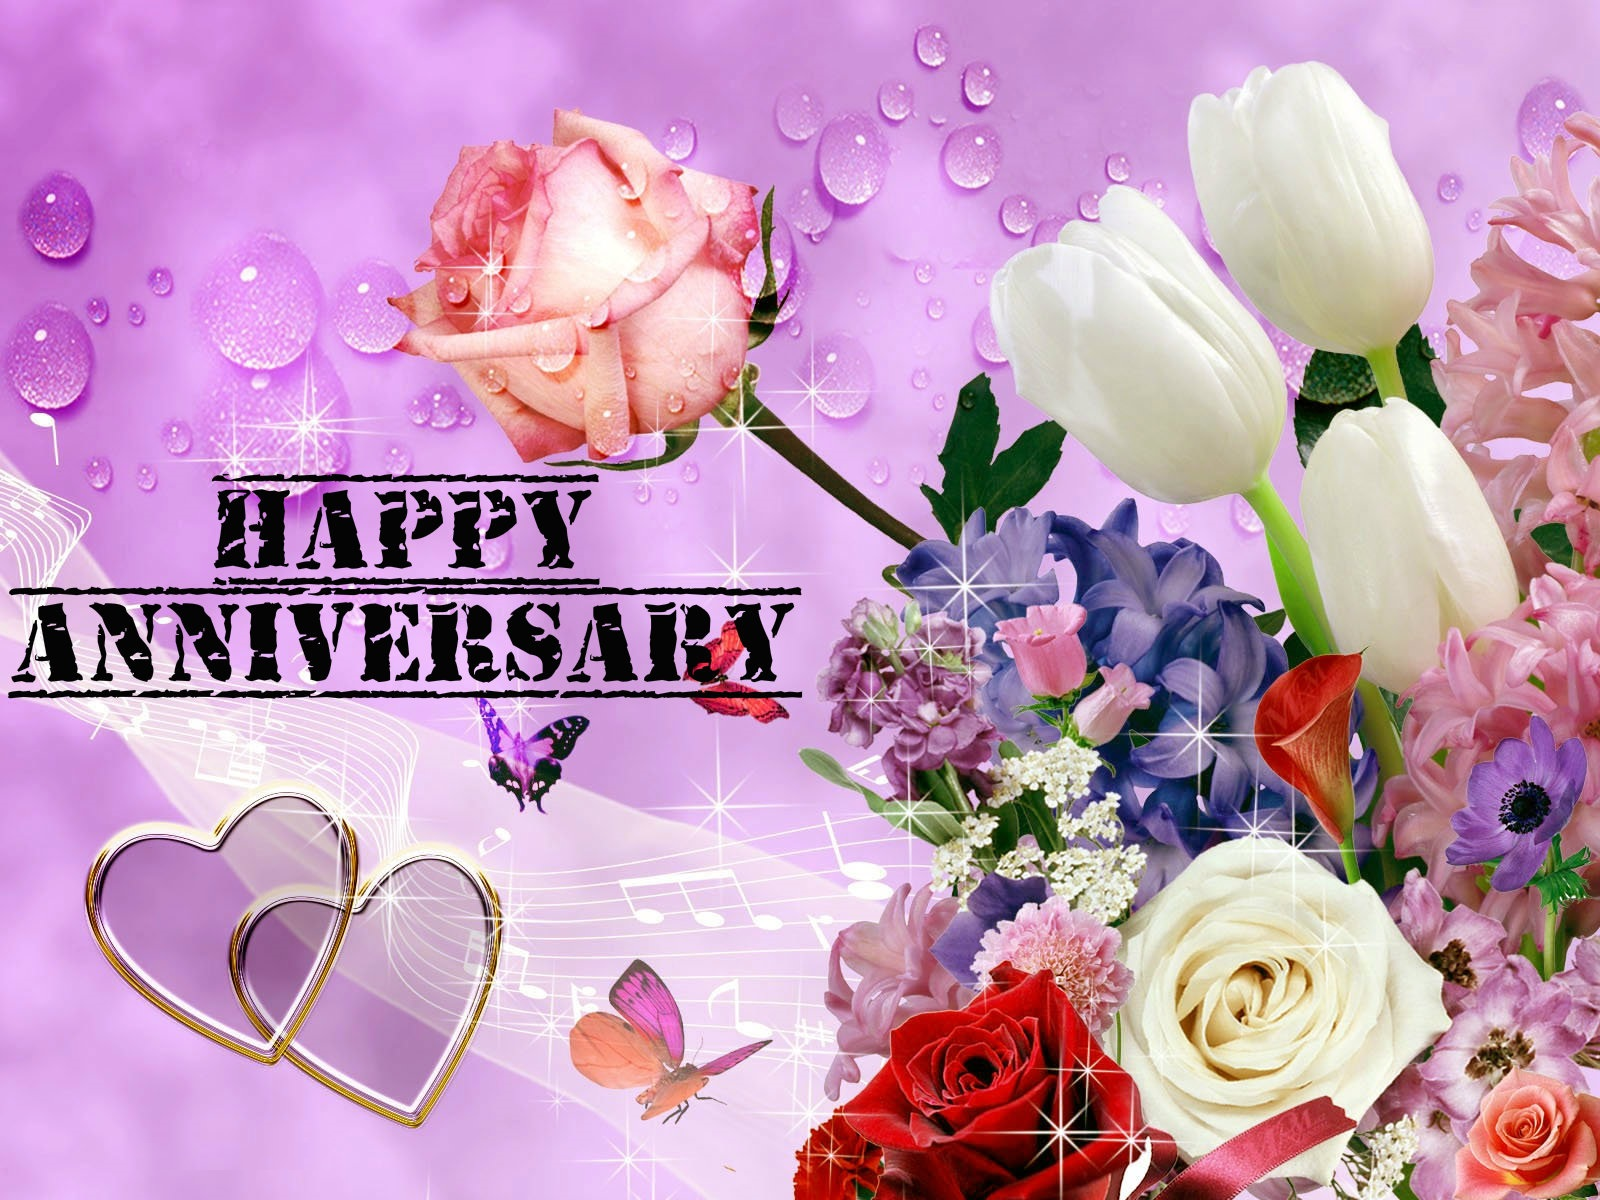 Awesome anniversary pink flowers images download